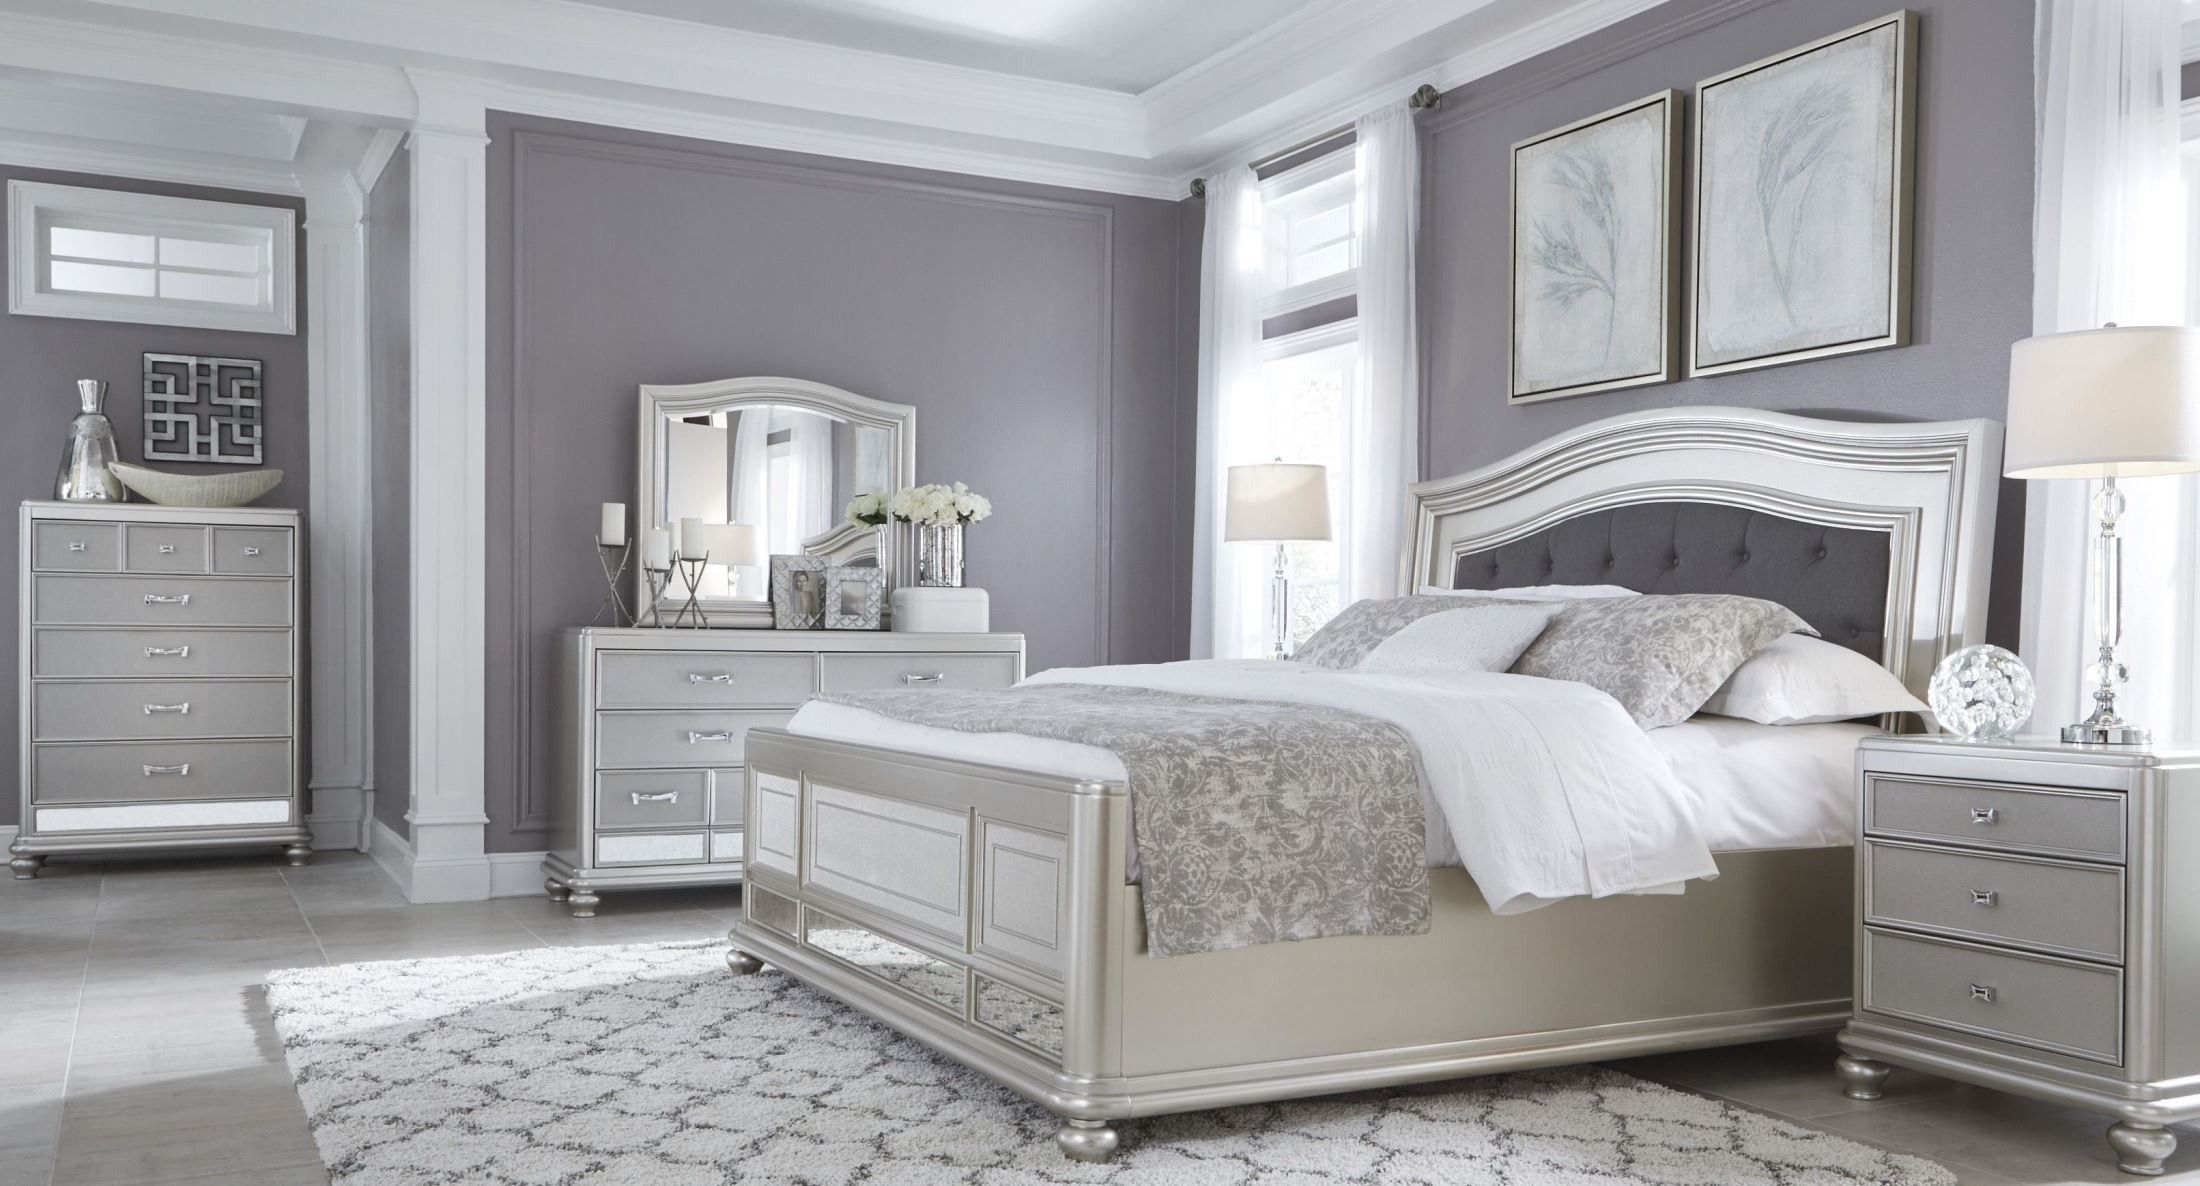 Coralayne Silver Bedroom Set …  Pinteres… Simple Silver Bedroom Decor Inspiration Design